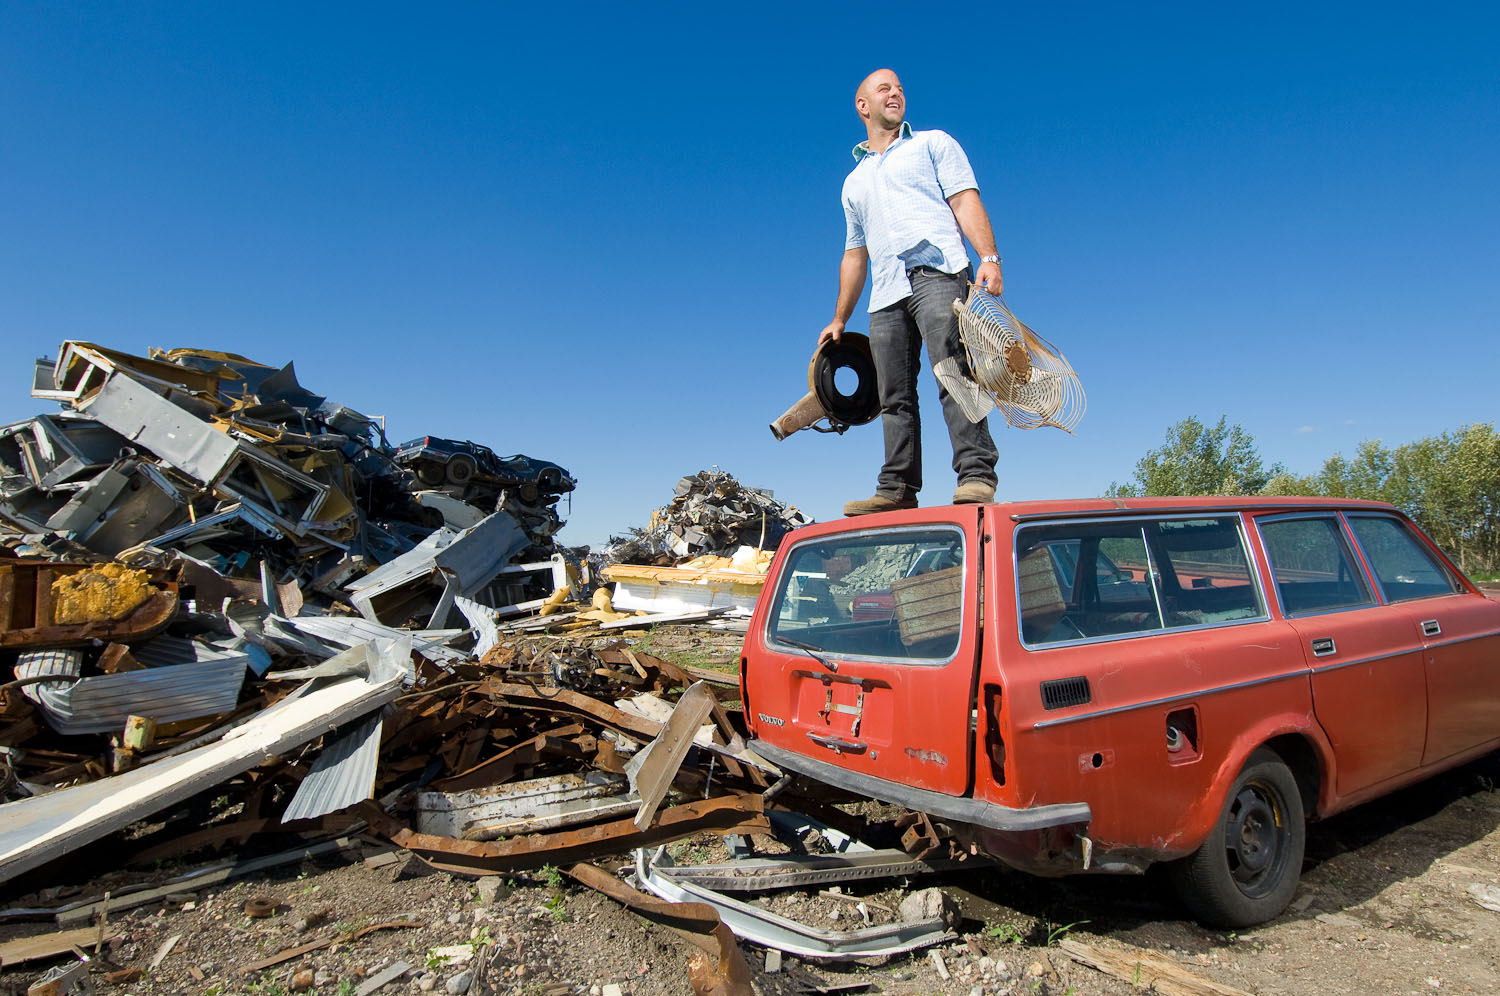 Garbage dump by winnipeg editorial photographer